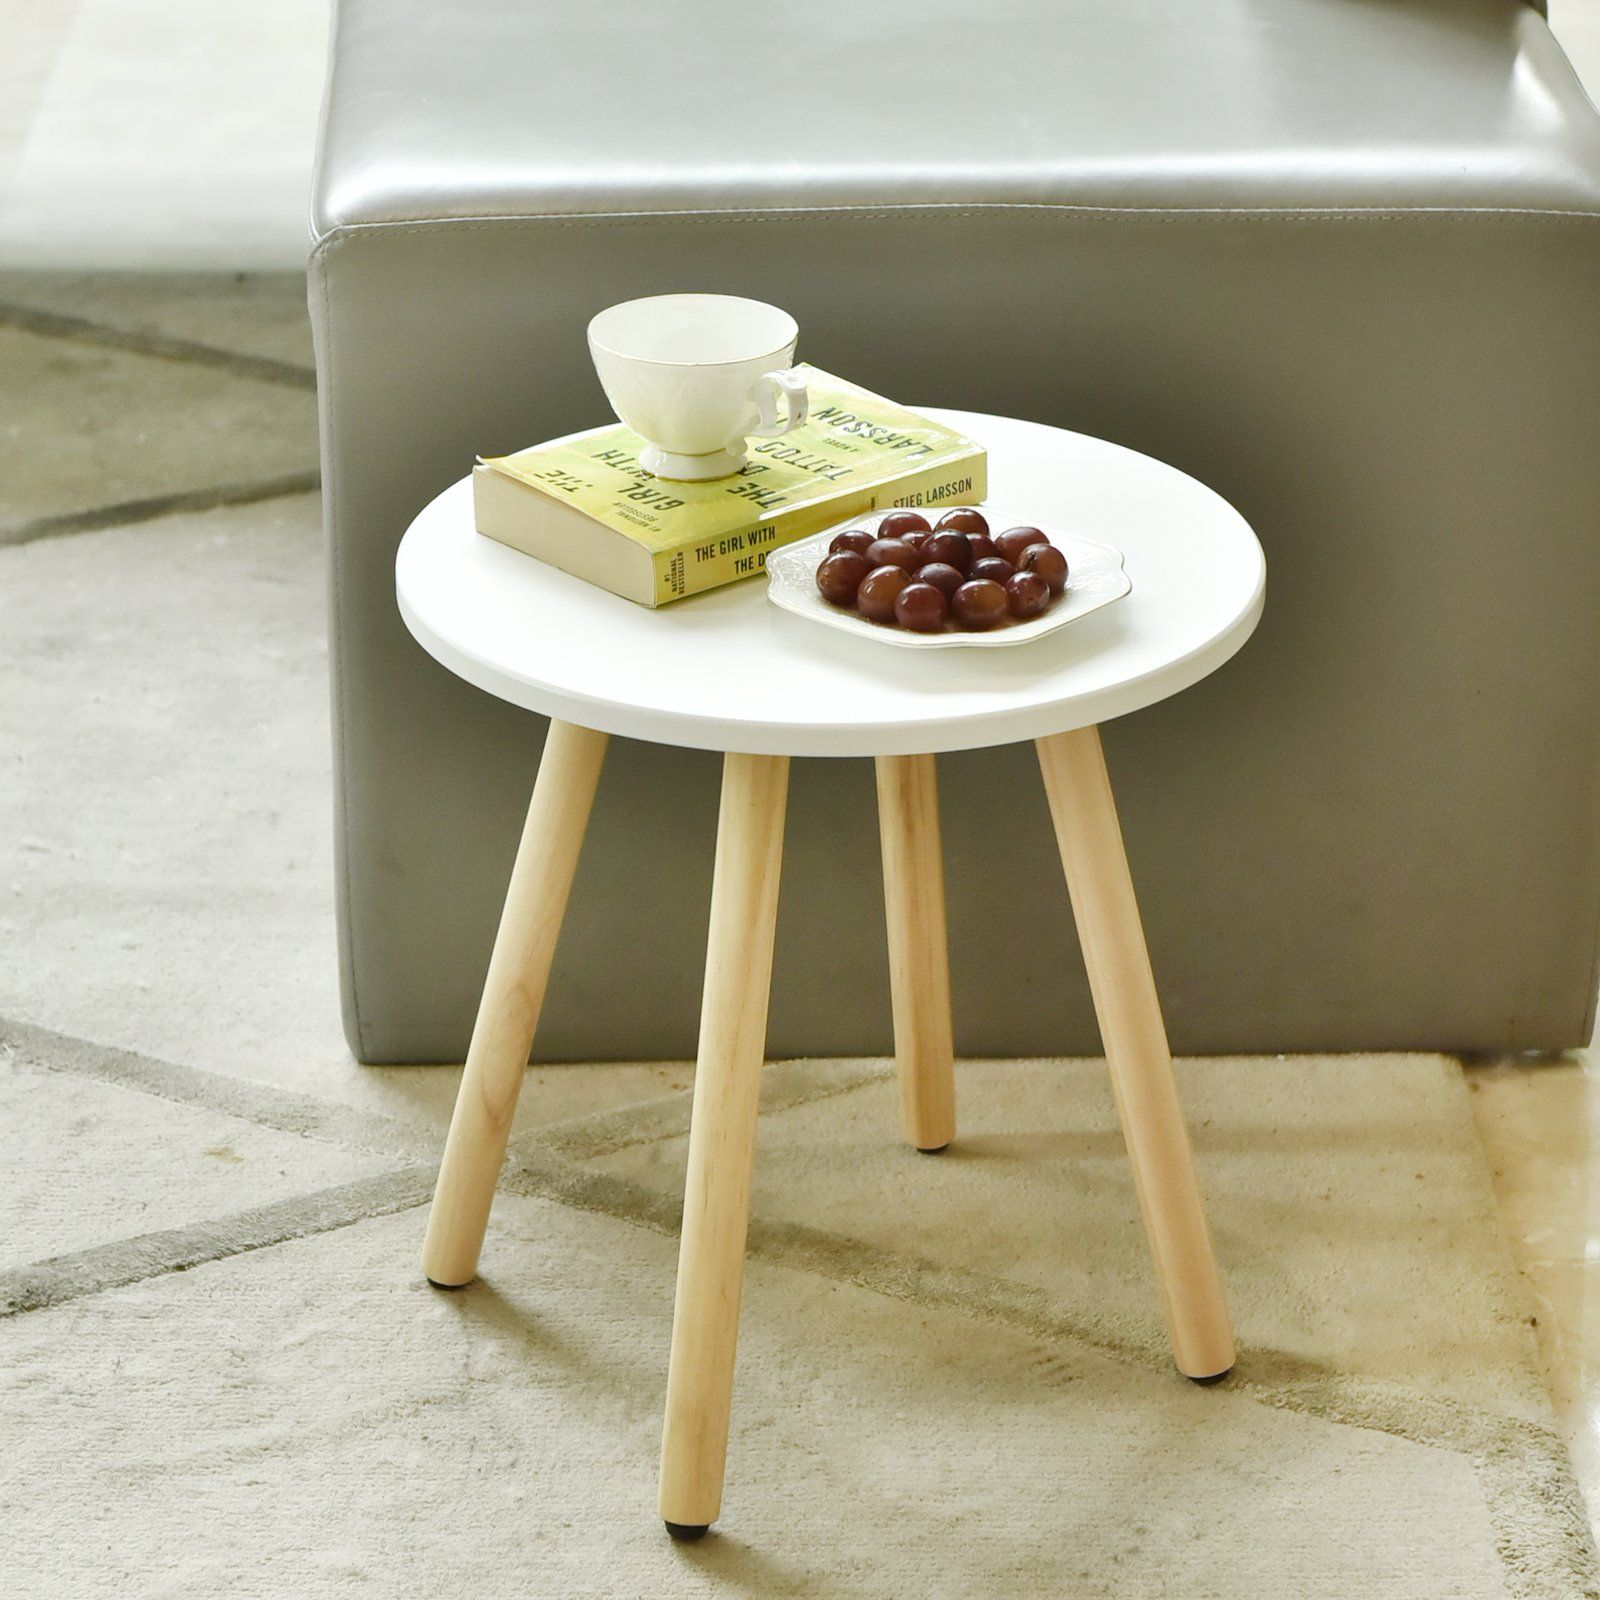 Welland Wood End Table Modern Round Coffee Table Living Room Side Table For Magazines Books And P Round Coffee Table Modern Coffee Table Living Room Side Table [ 1600 x 1600 Pixel ]